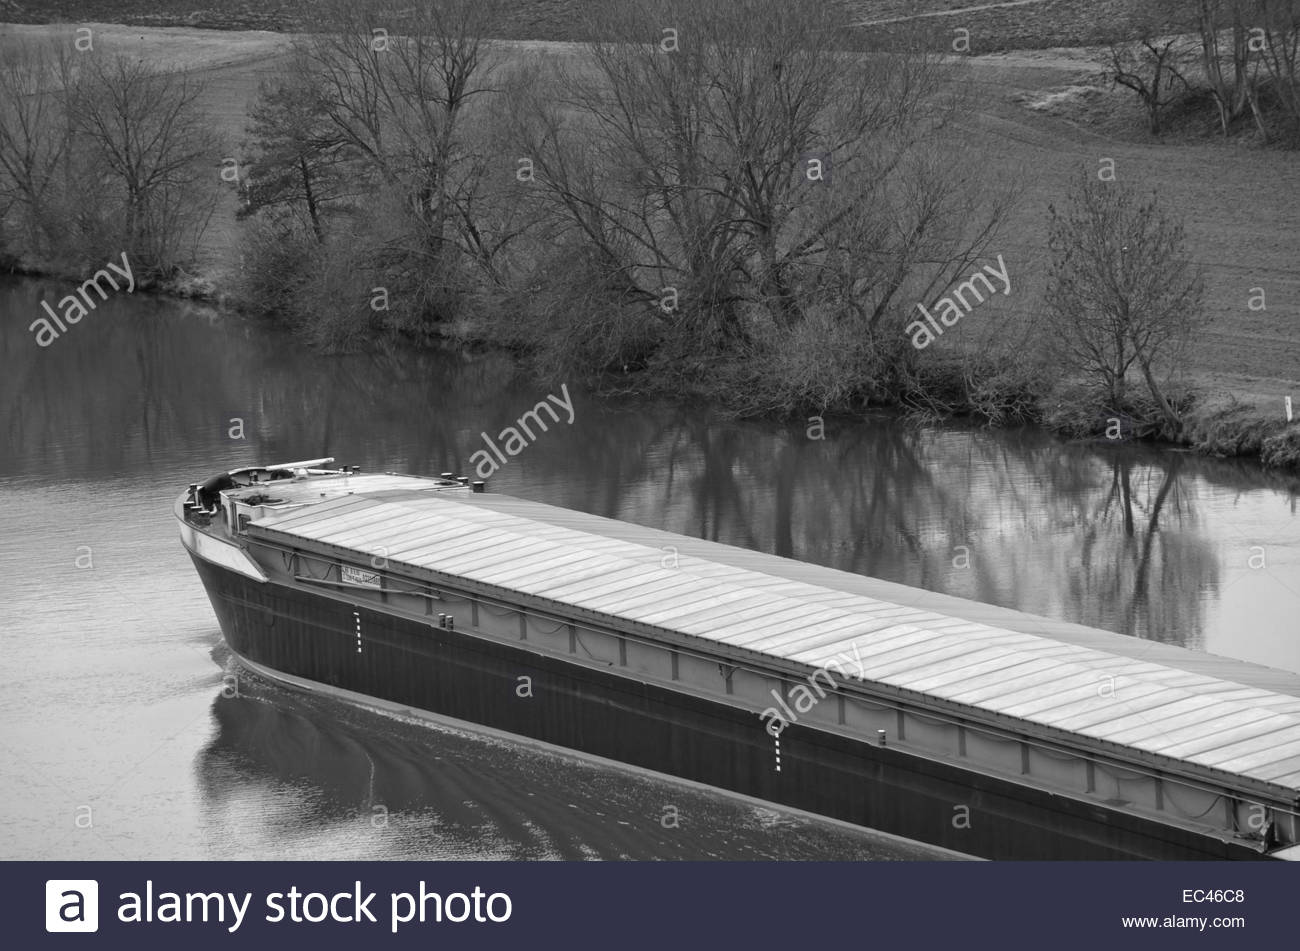 Inland waterway craft, Neckar river, Germany - Stock Image